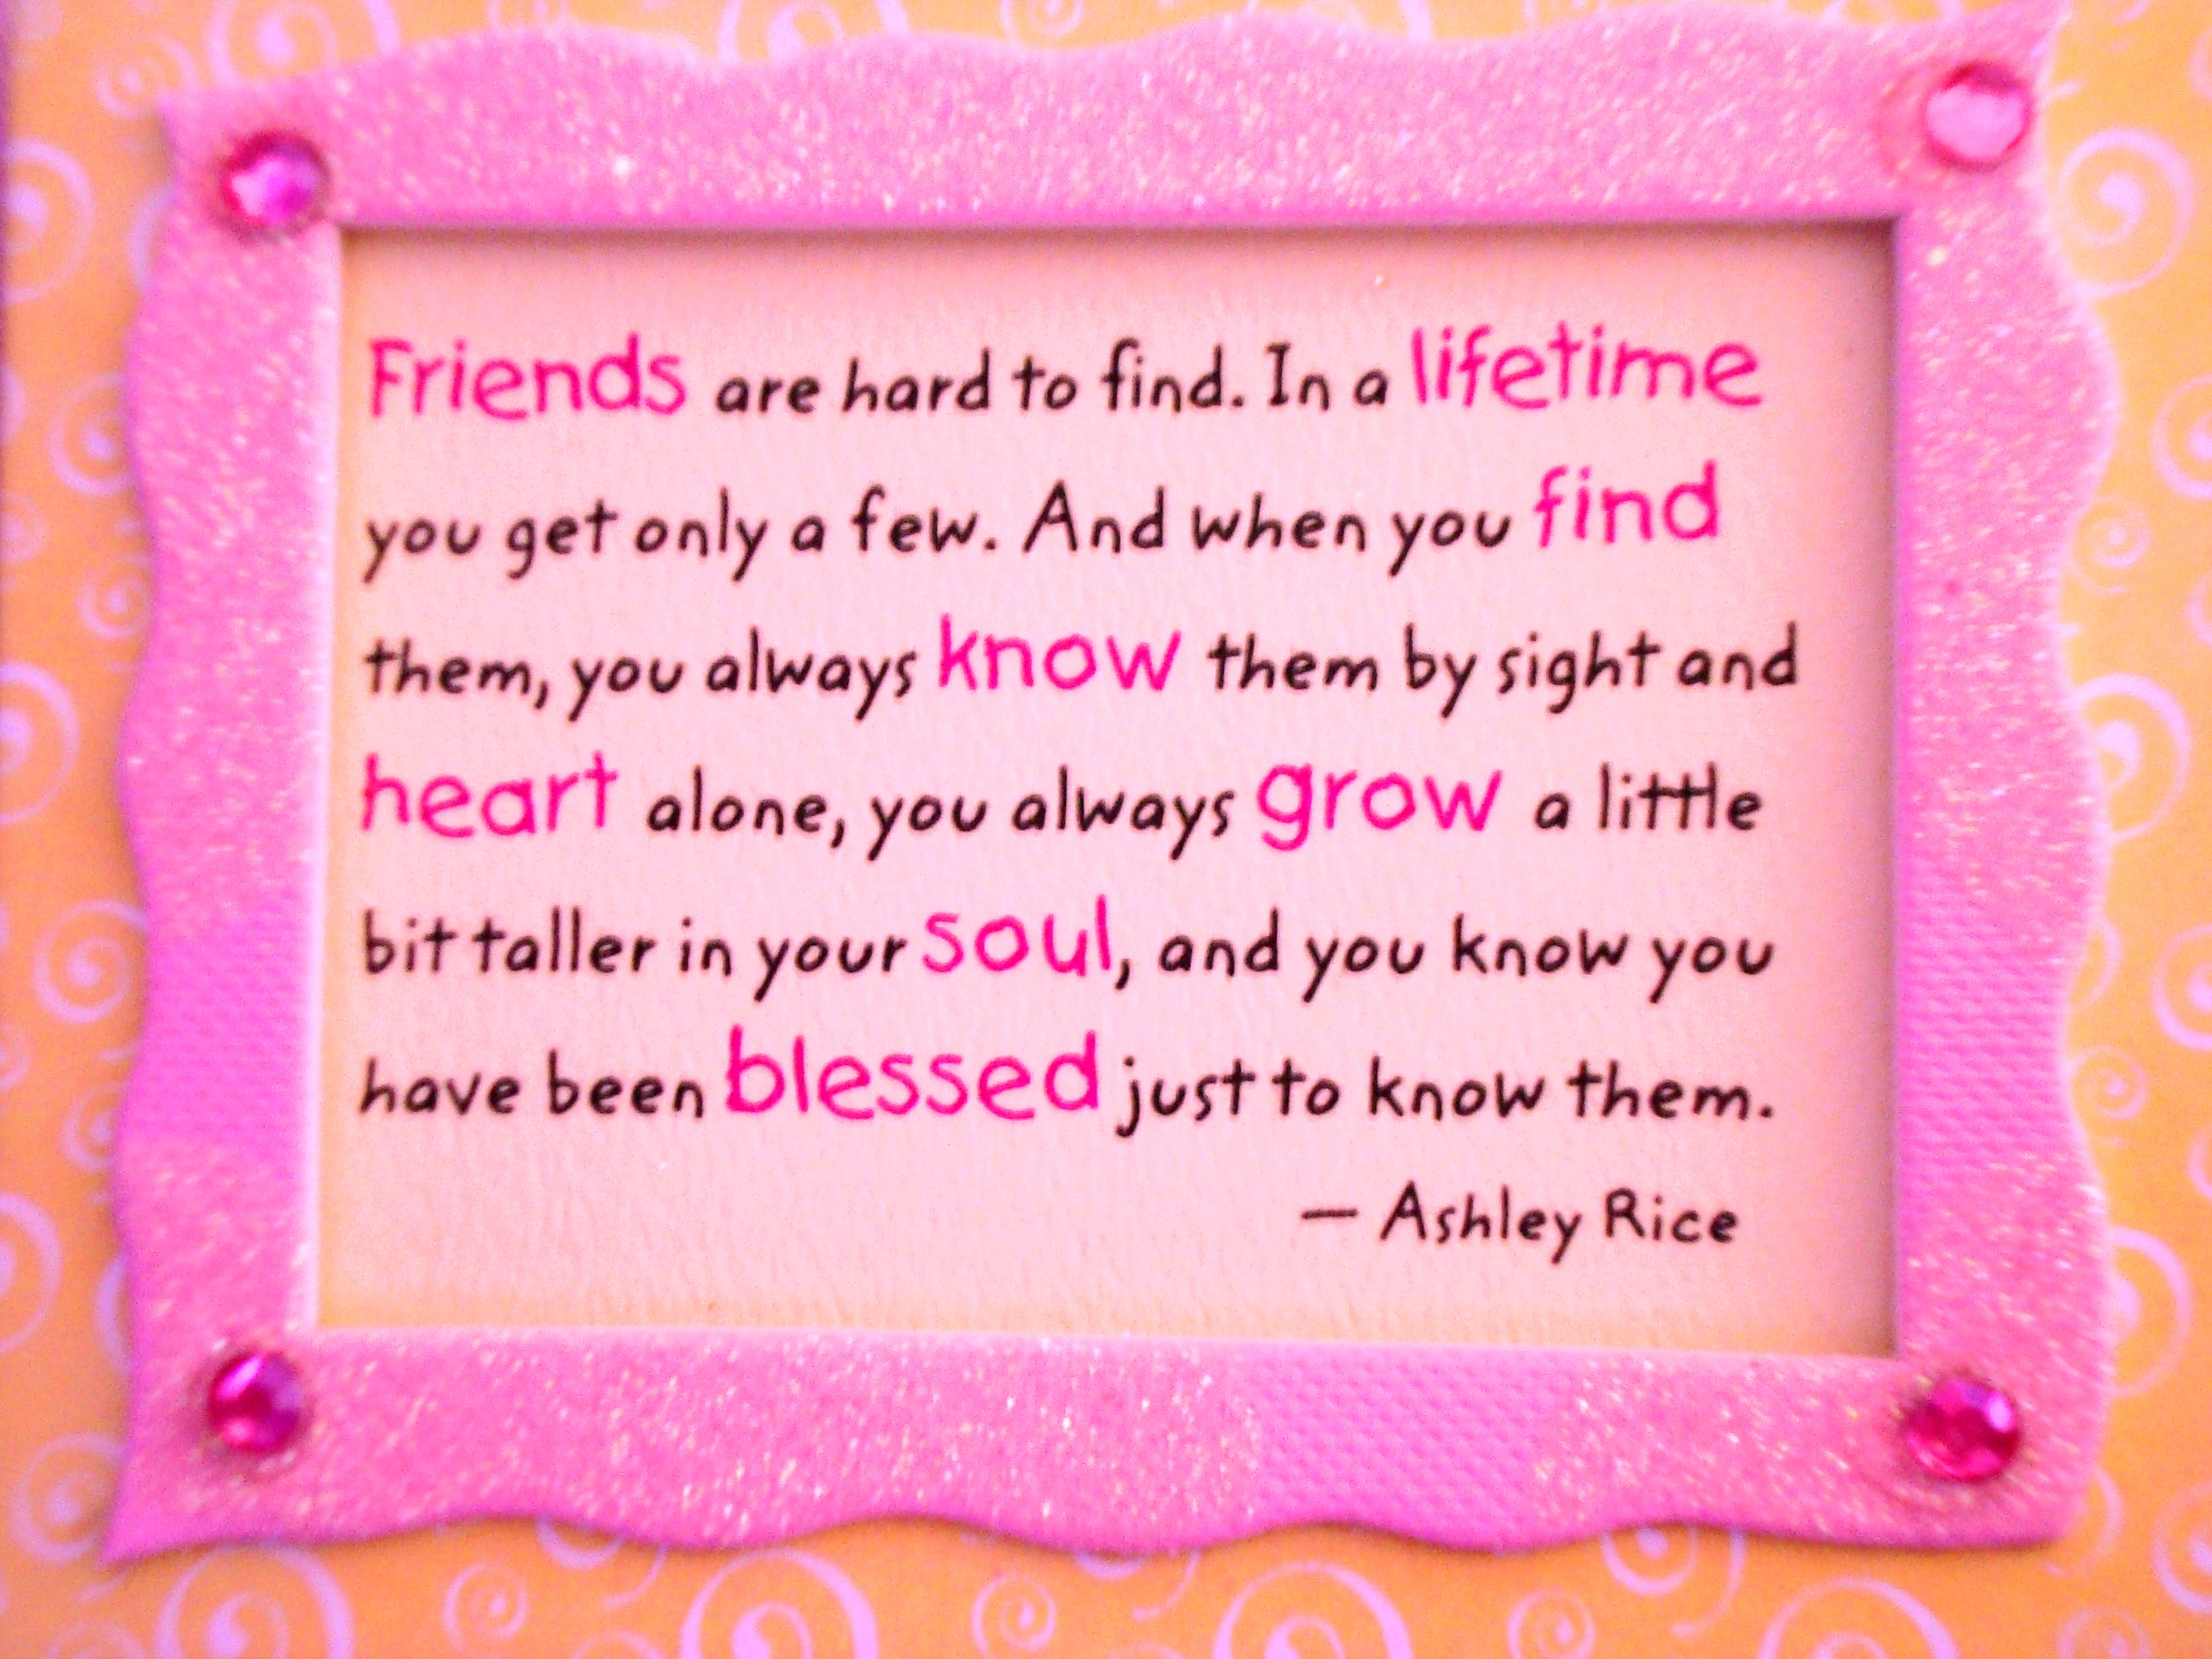 Friendship quotes sad sad friendship quotes and car tuning